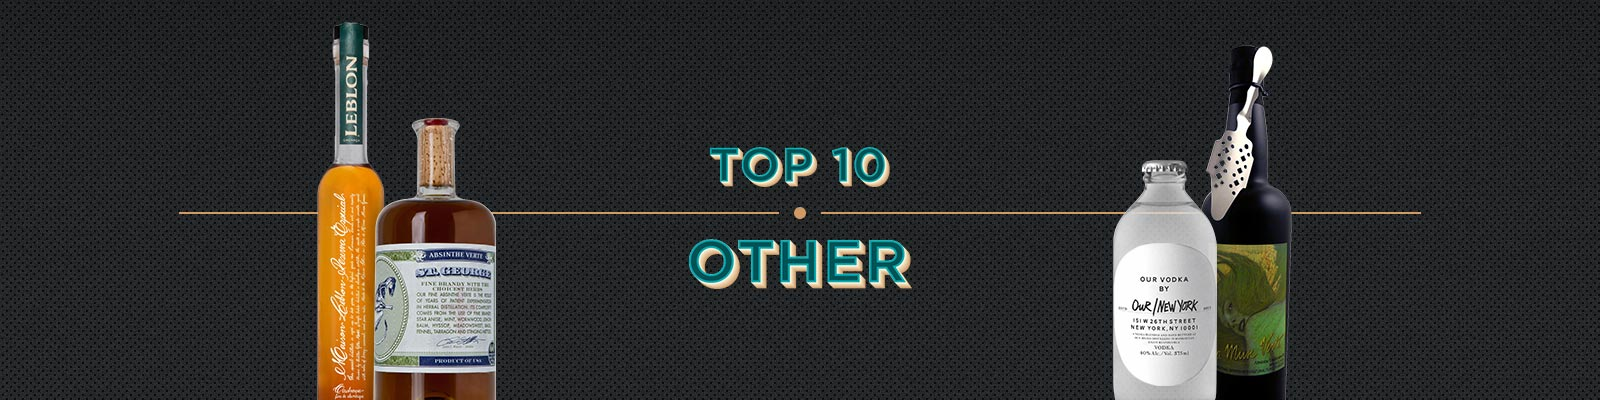 Top 10 Other